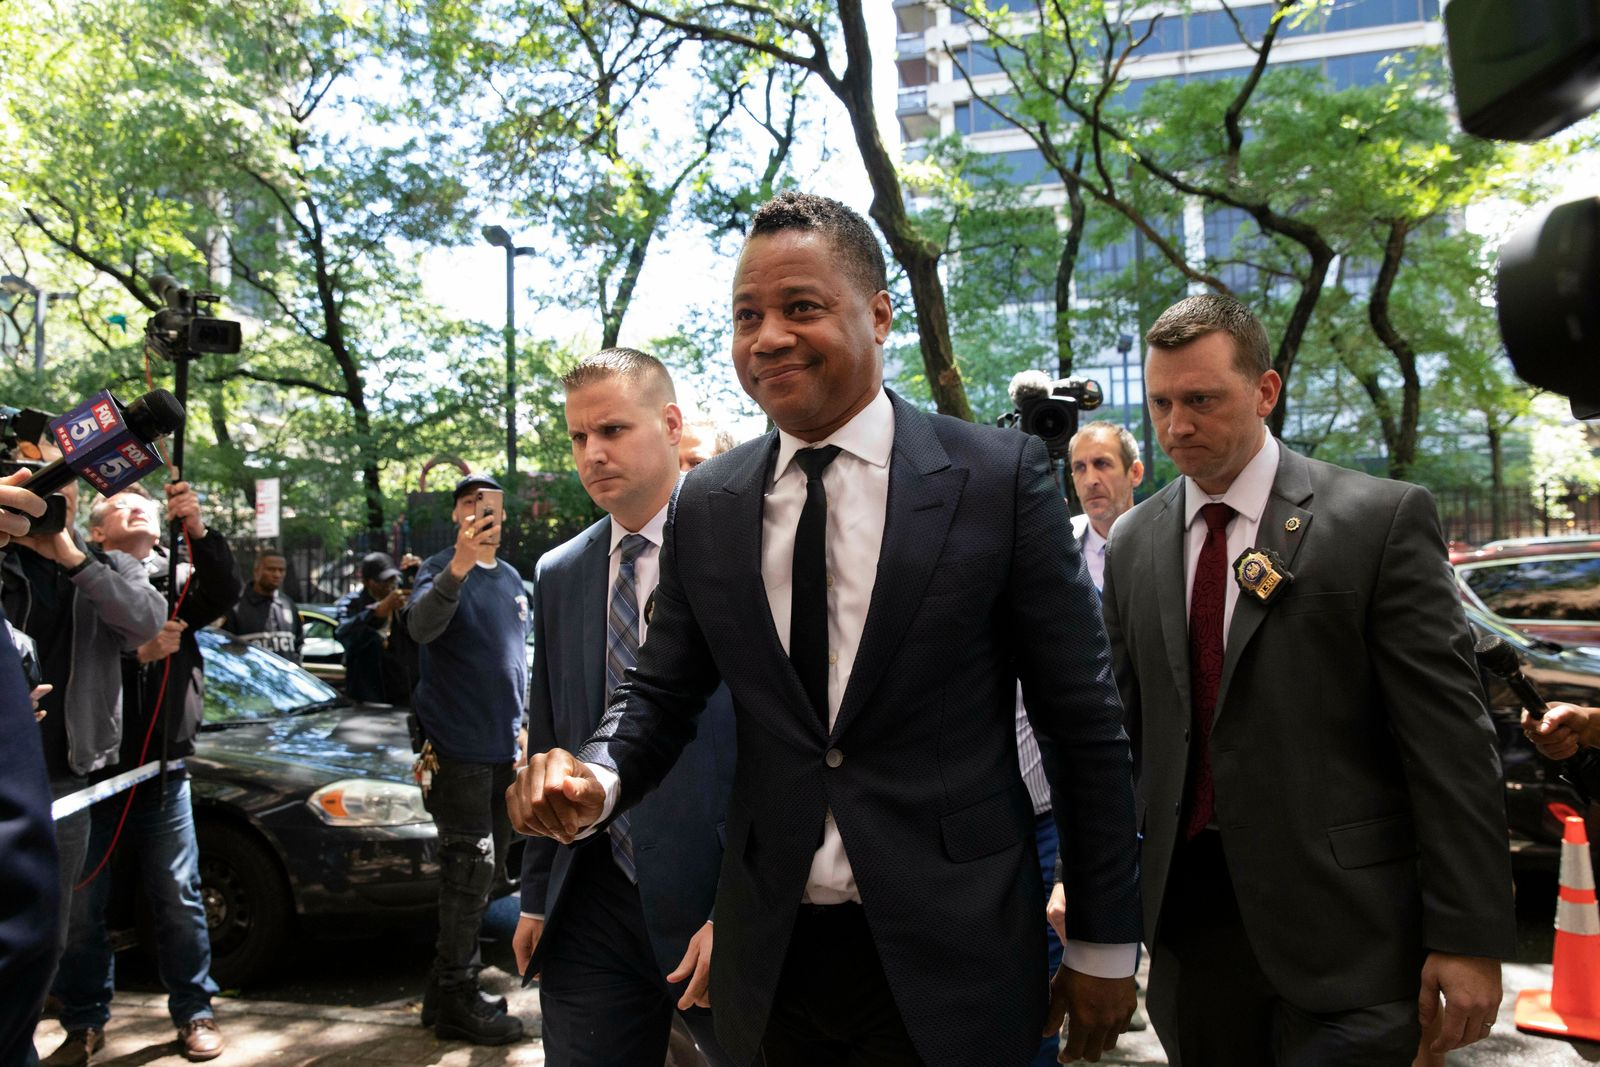 Actor Cuba Gooding Jr. arrives at the New York Police Department's Special Victim's Unit, Thursday, June 13, 2019 to face allegations he groped a woman at a city night spot. (AP Photo/Mark Lennihan)